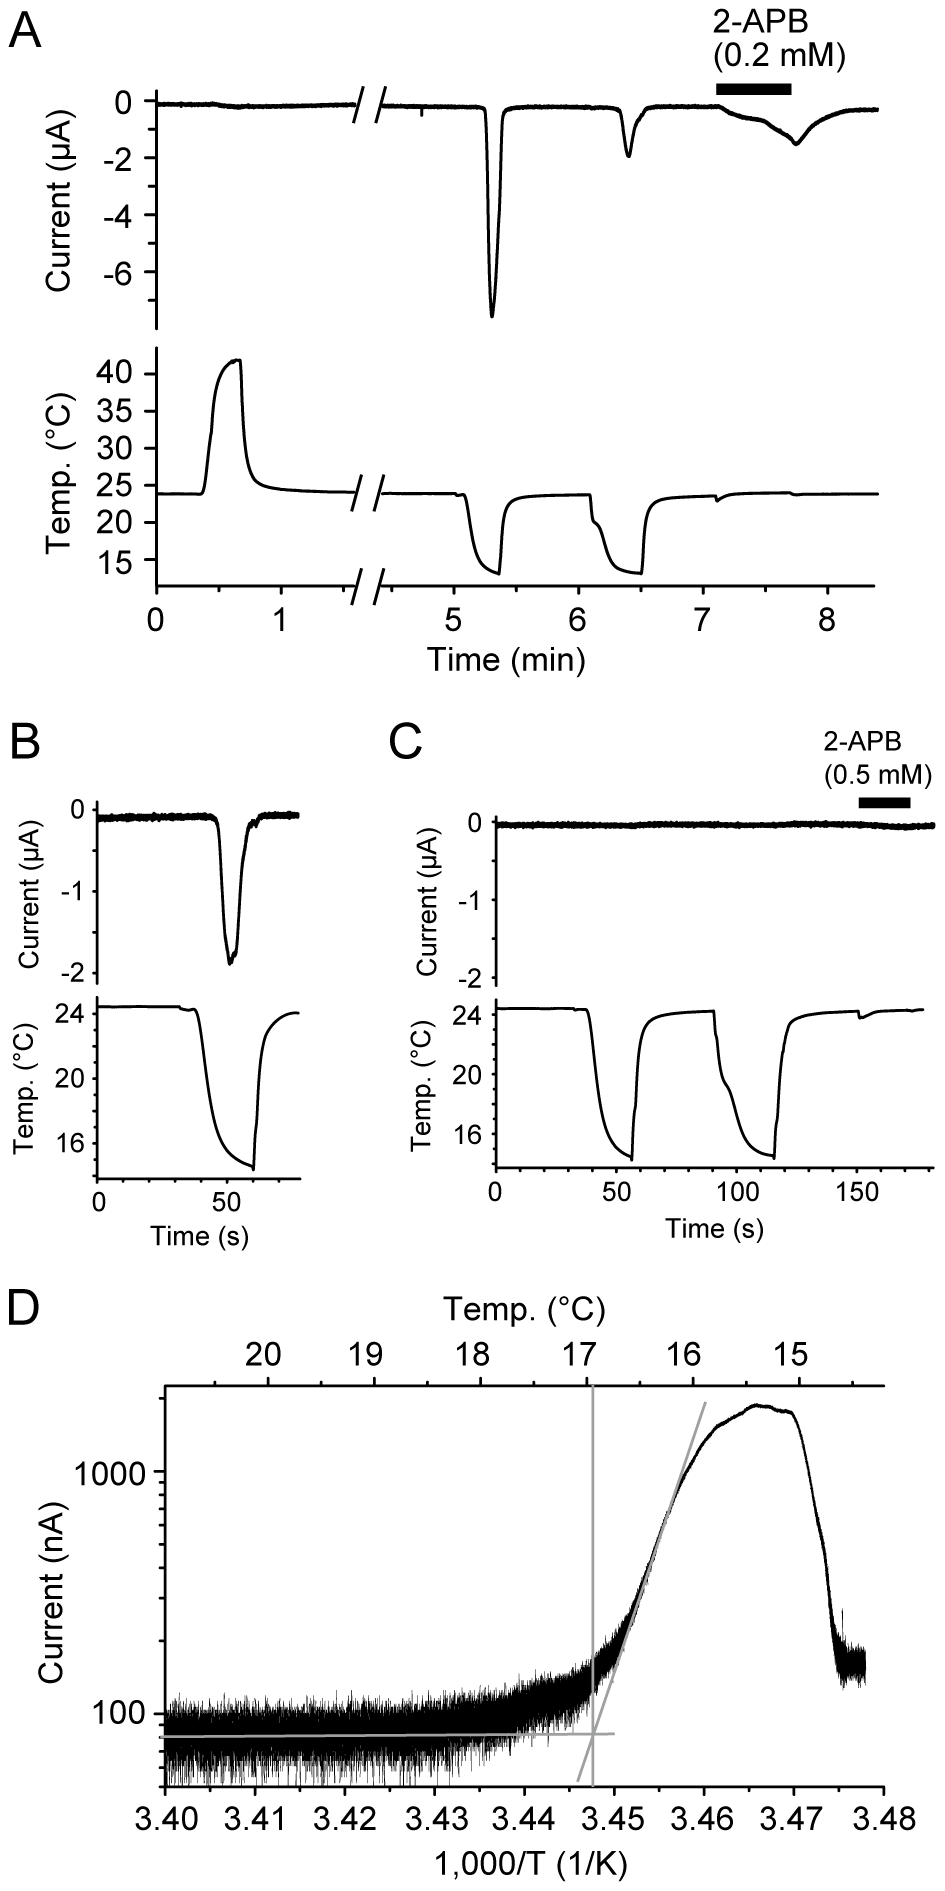 Cold temperature activation of the TRPV3 channel of the western clawed frog.